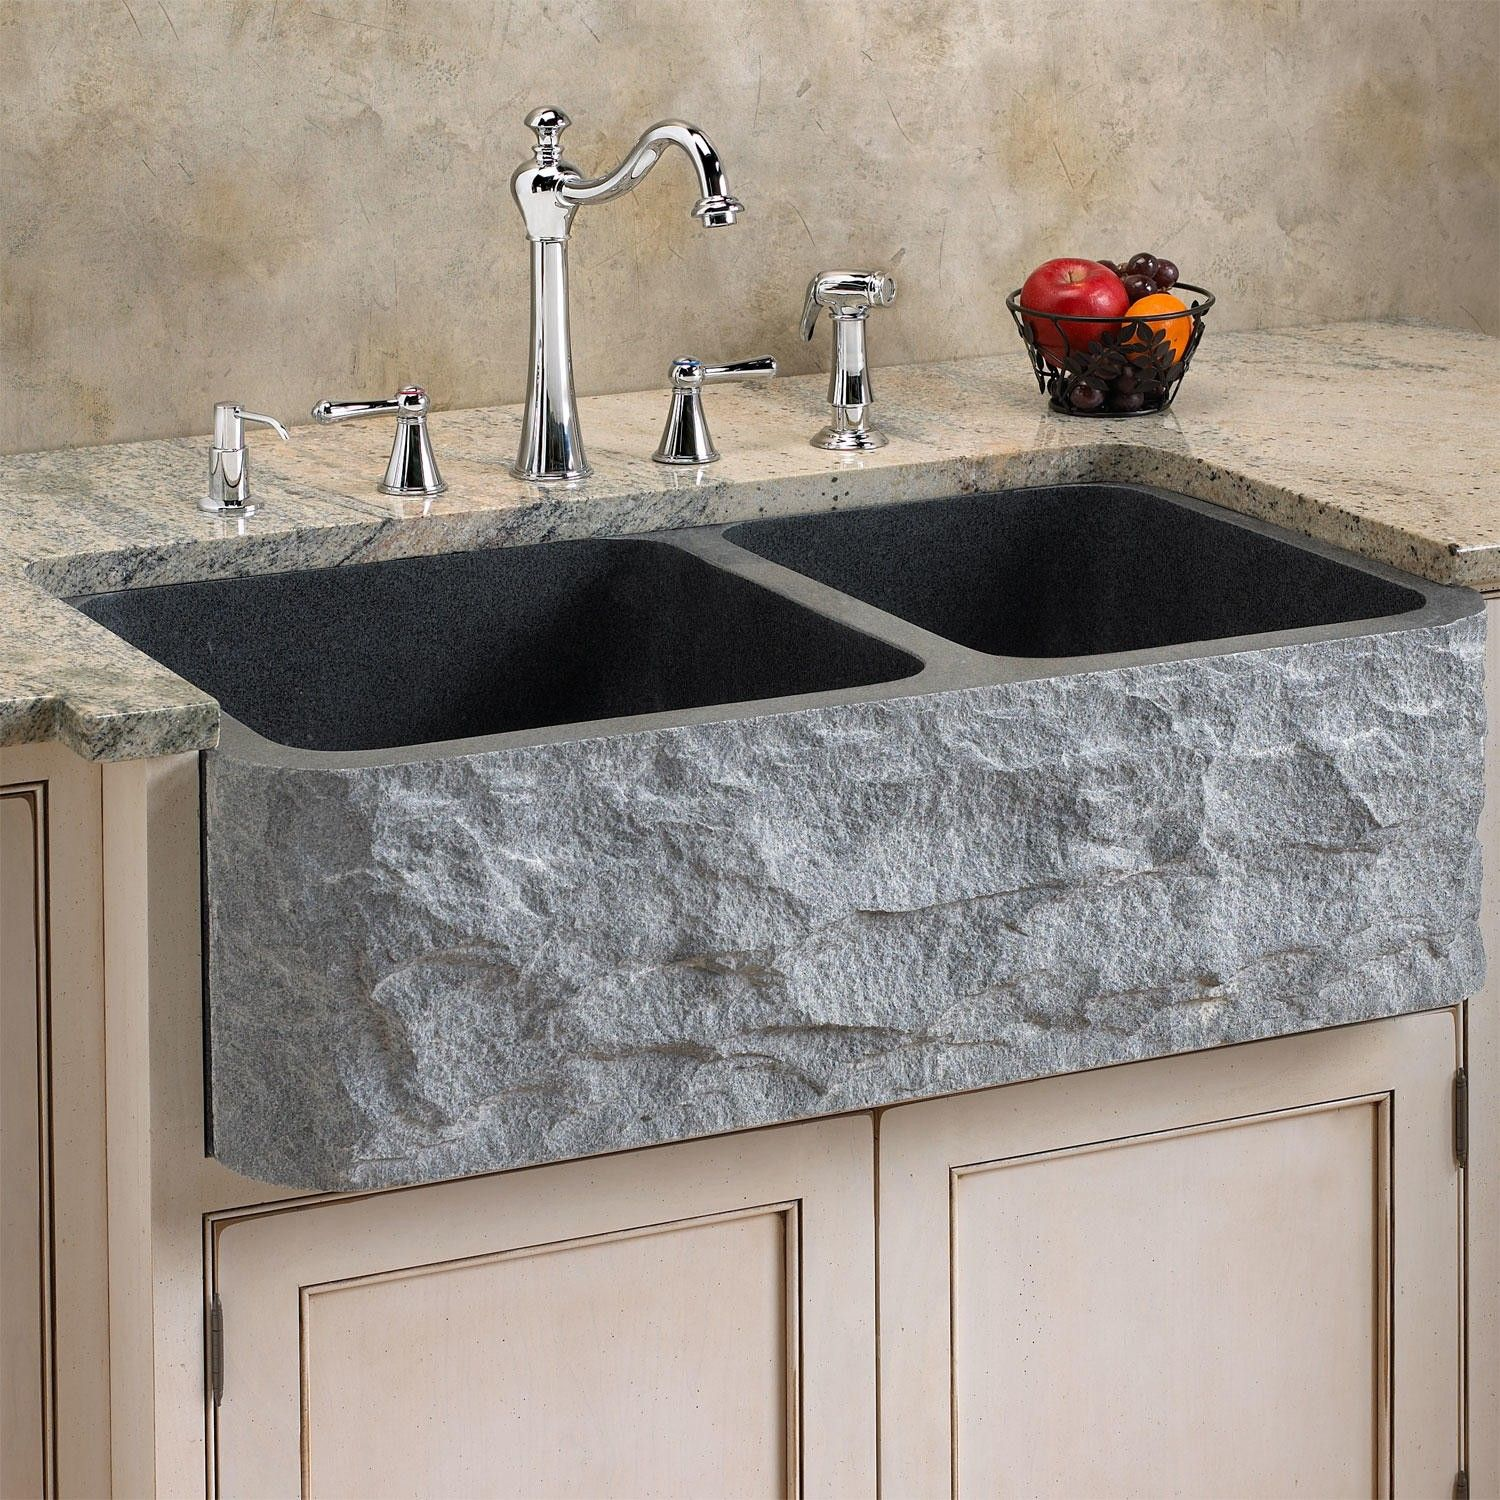 Imperialabsolute black granite apron double bowl farmhouse kitchen sink gorgeous sale was 2500 description from ebay com